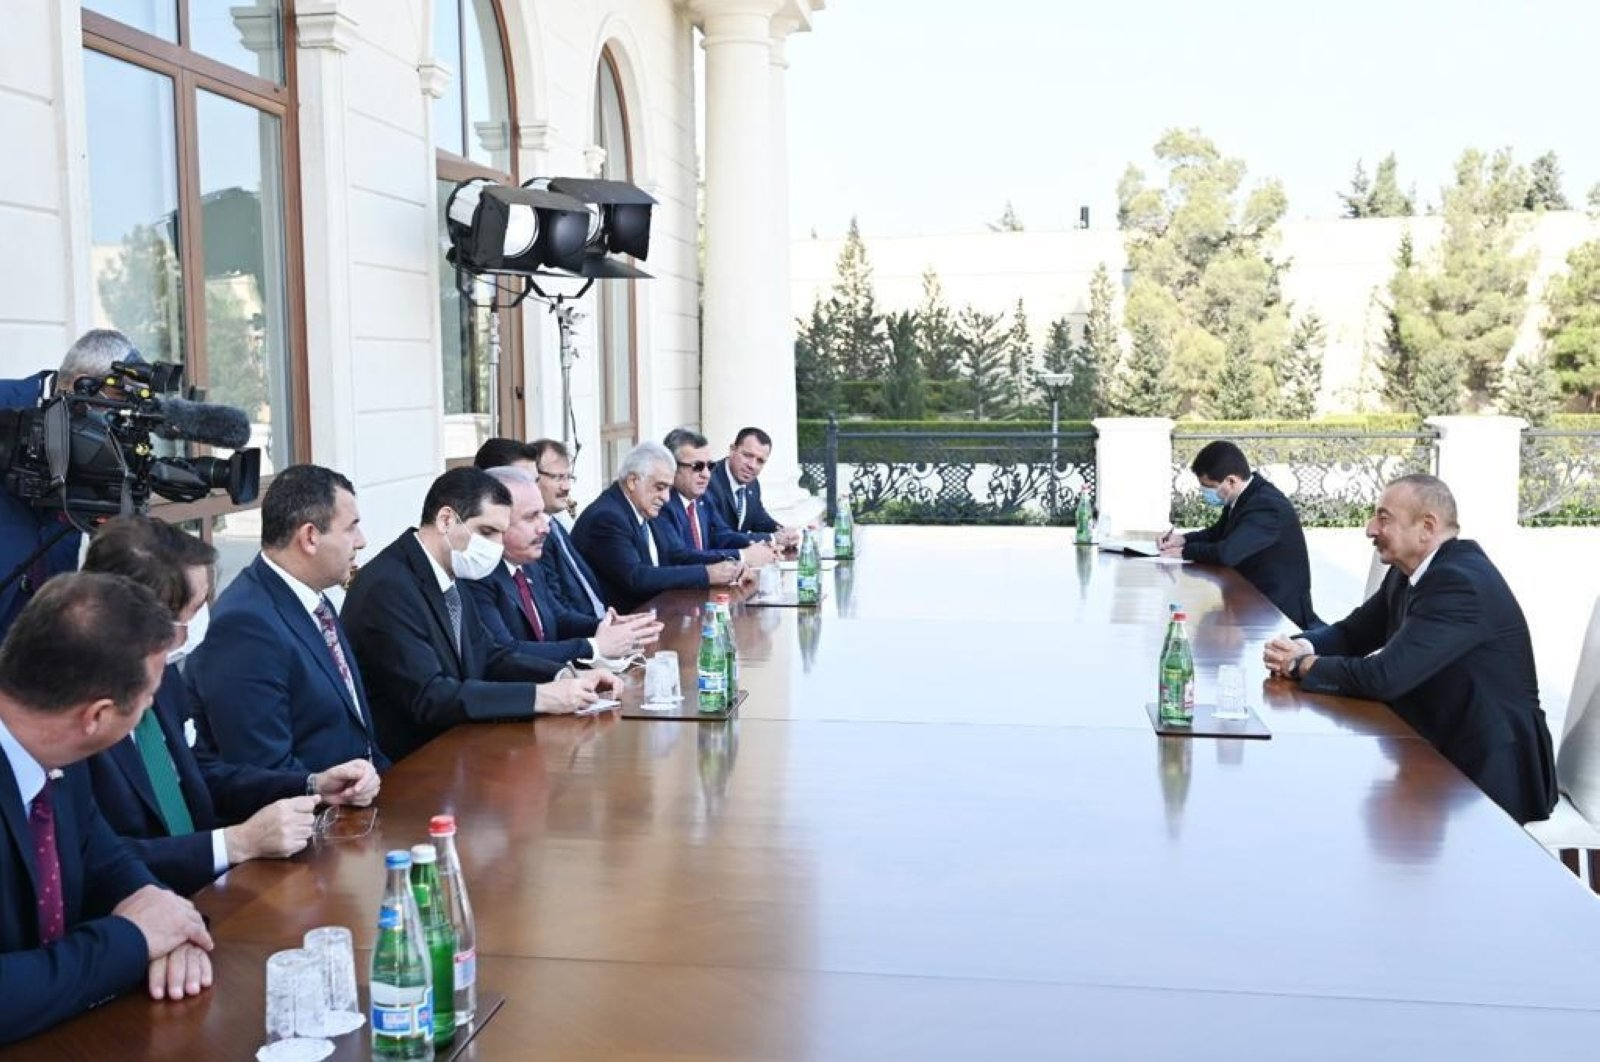 Turkey's Parliament Speaker Mustafa Şentop (L) came together with Azerbaijan's President Ilham Aliyev to hold official talks, Oct. 19, 2020 (AA Photo)